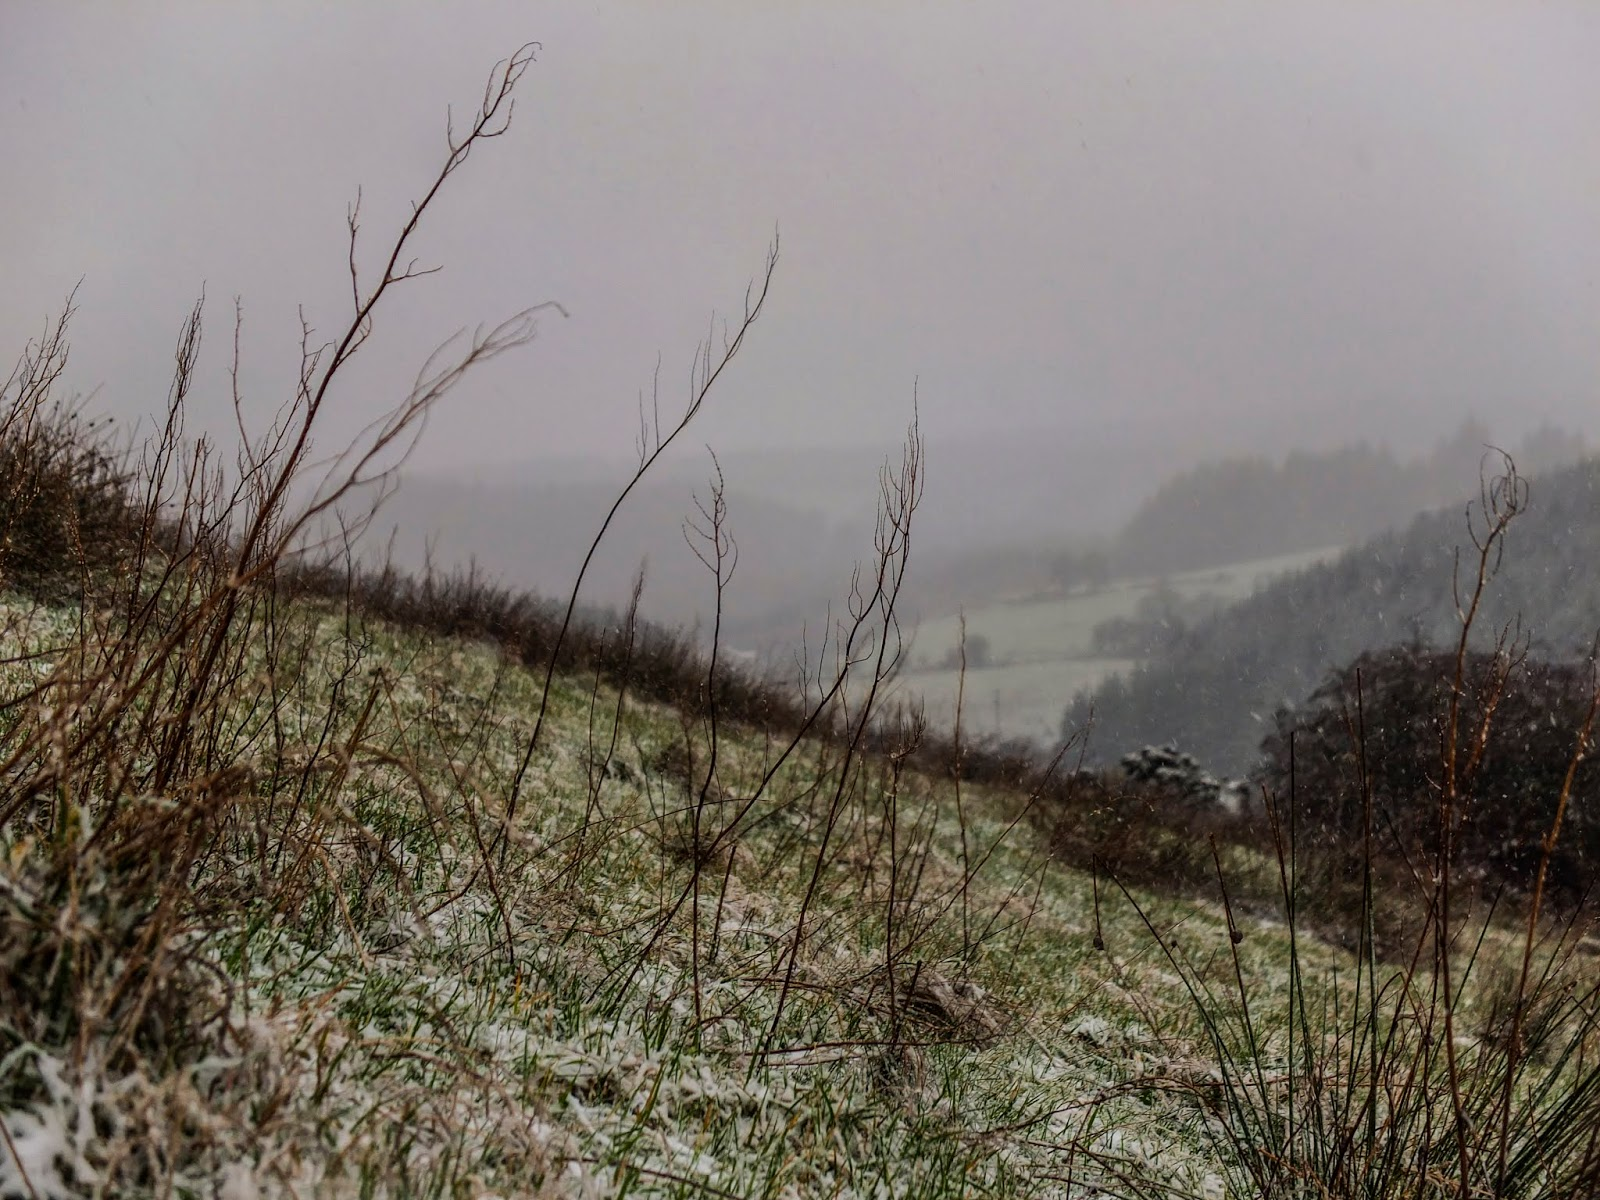 Snow beginning to fall in a valley in the Boggeragh Mountains.